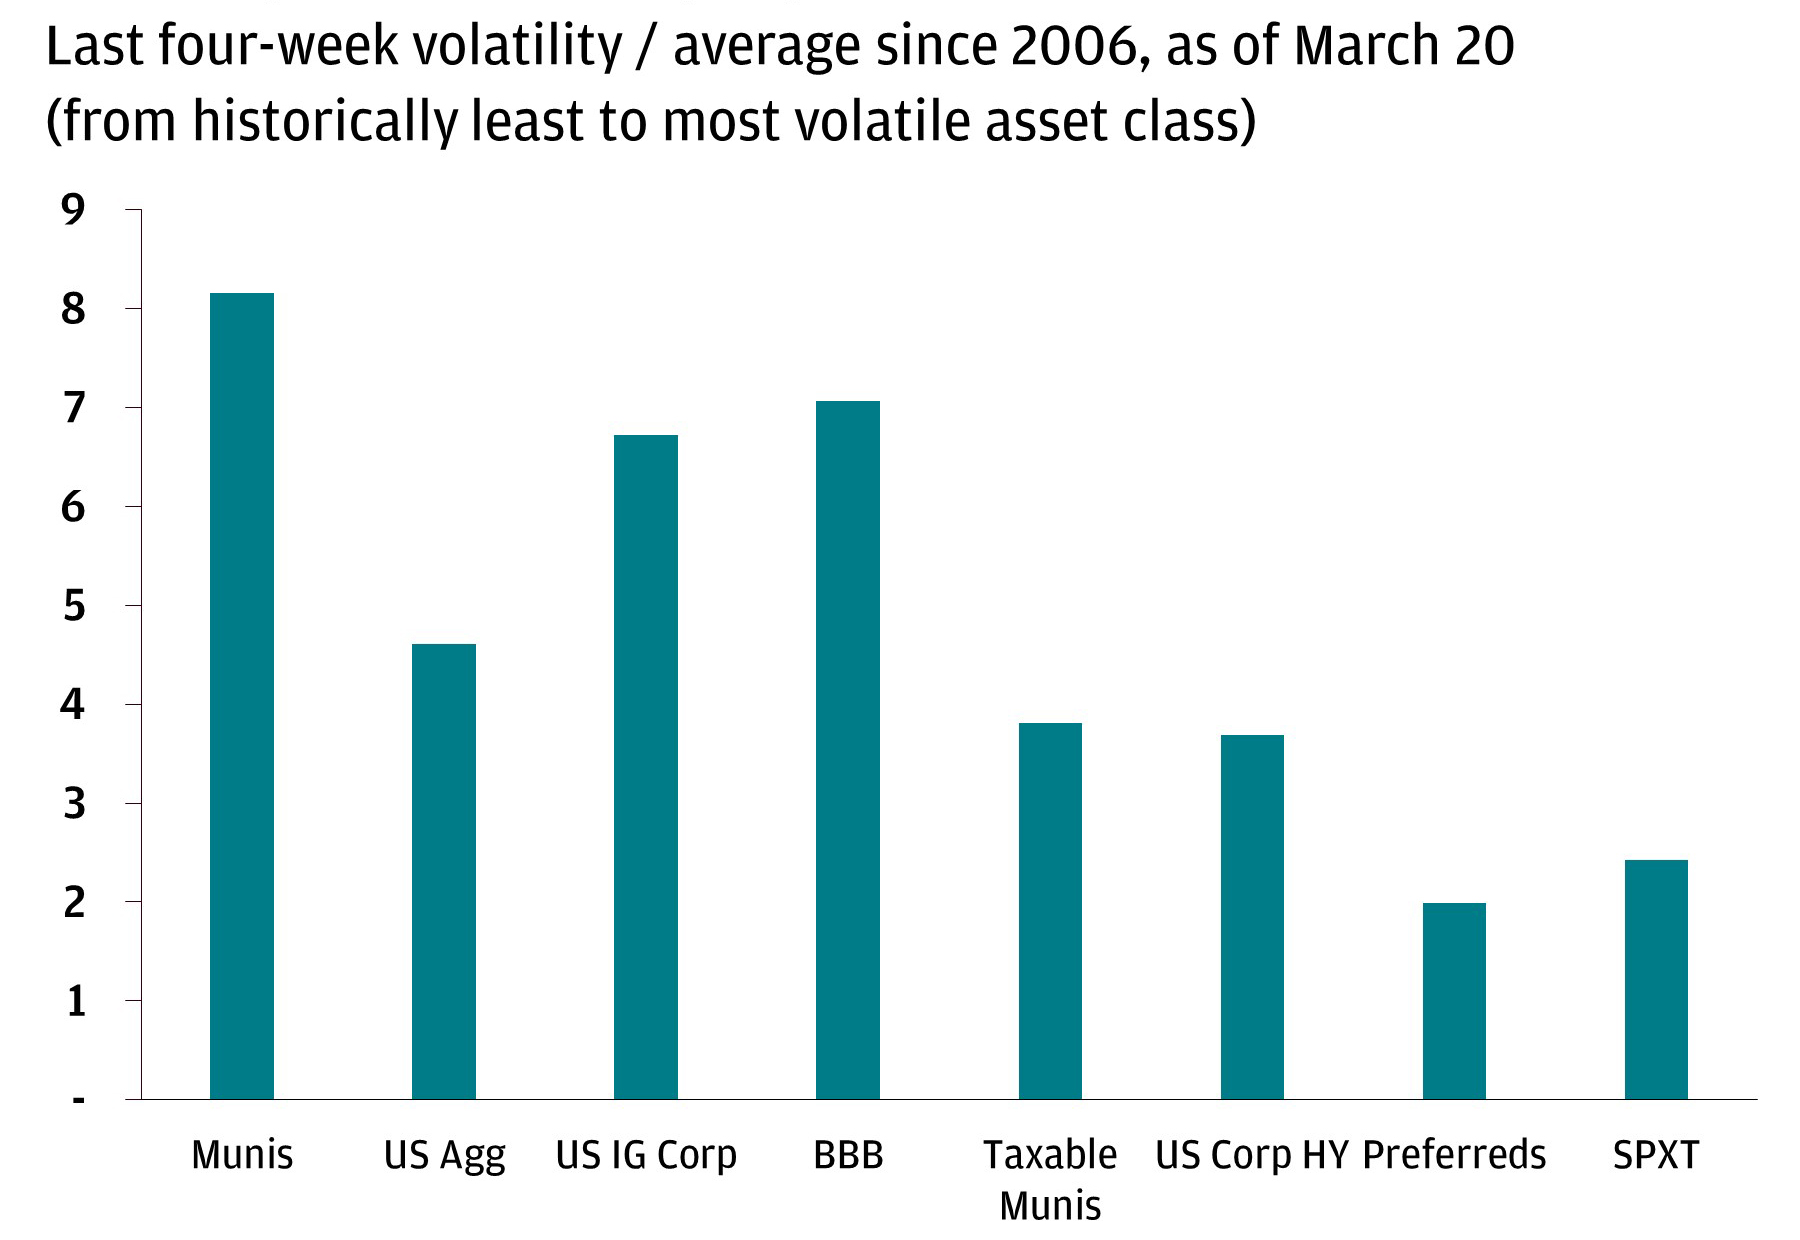 Bar chart compares performance of munis with US Aggregate, US IG Corp, BBB, Taxable Munis, US Corp HY, Preferreds, and SPXT, showing their 4-week volatility (as of March 20, 2020).  Chart highlights that munis, which used to have the least volatility compared to this group, have experienced the highest level of volatility in recent weeks.